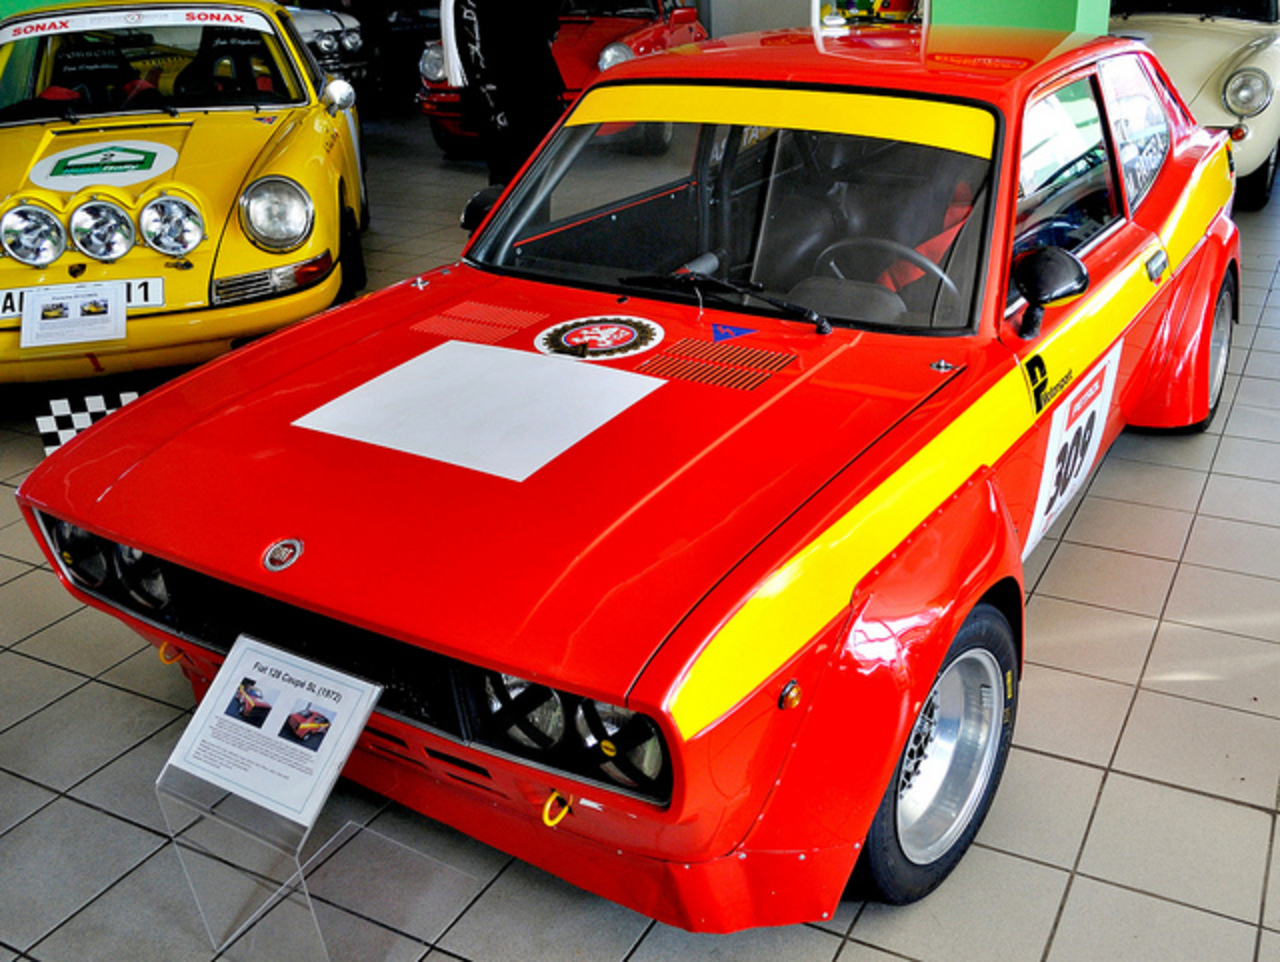 Fiat 128 Coupe SL (1972) | Flickr - Photo Sharing!